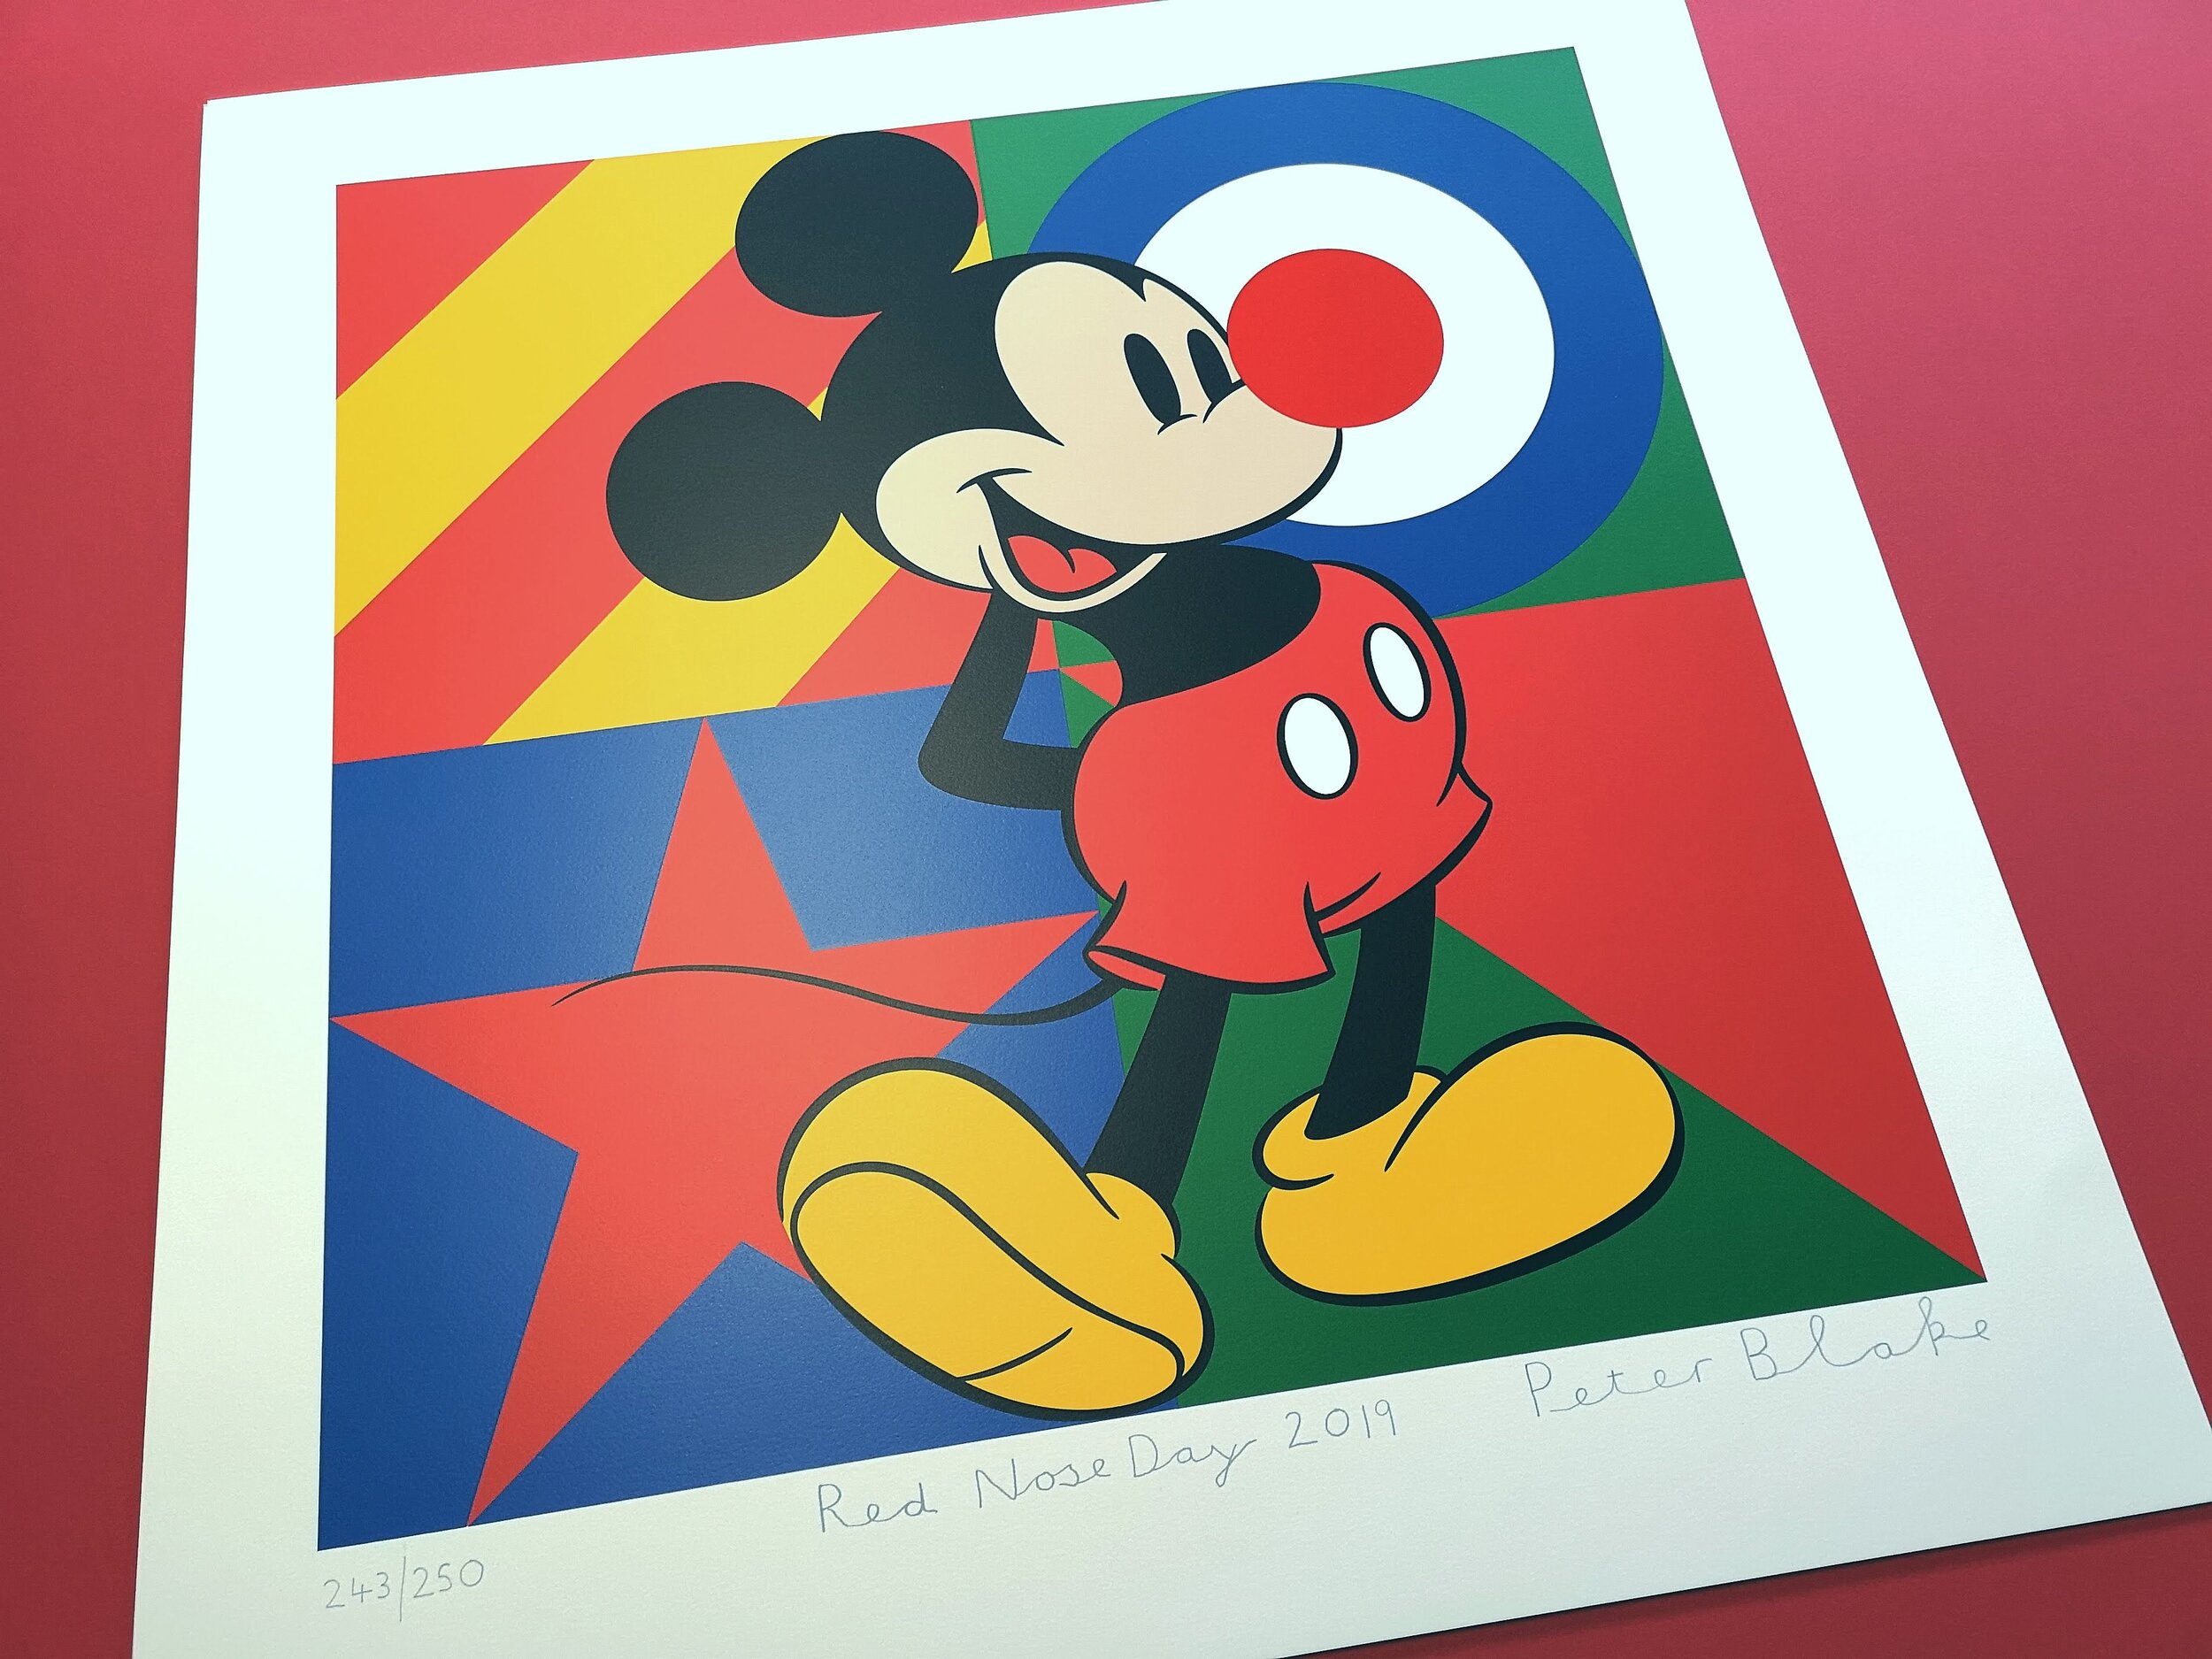 red-nose-day-2019-peter-blake-mickey-mouse.jpg